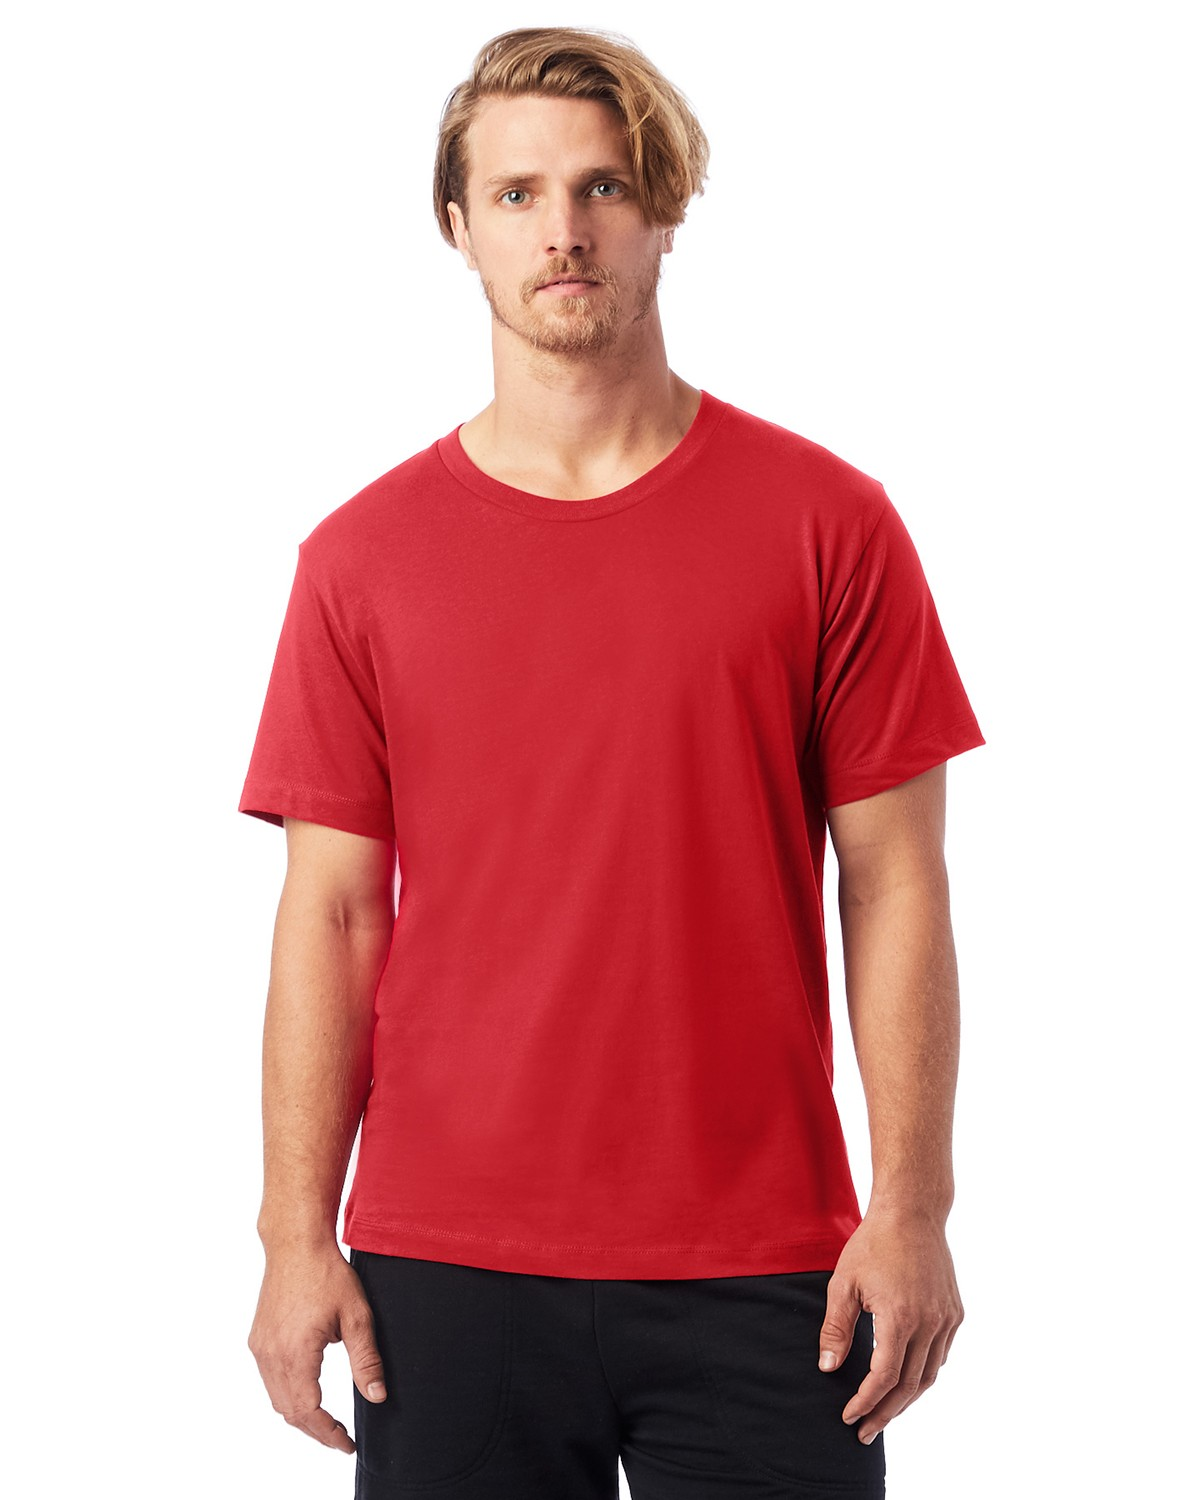 AA1070 Alternative Bright Red